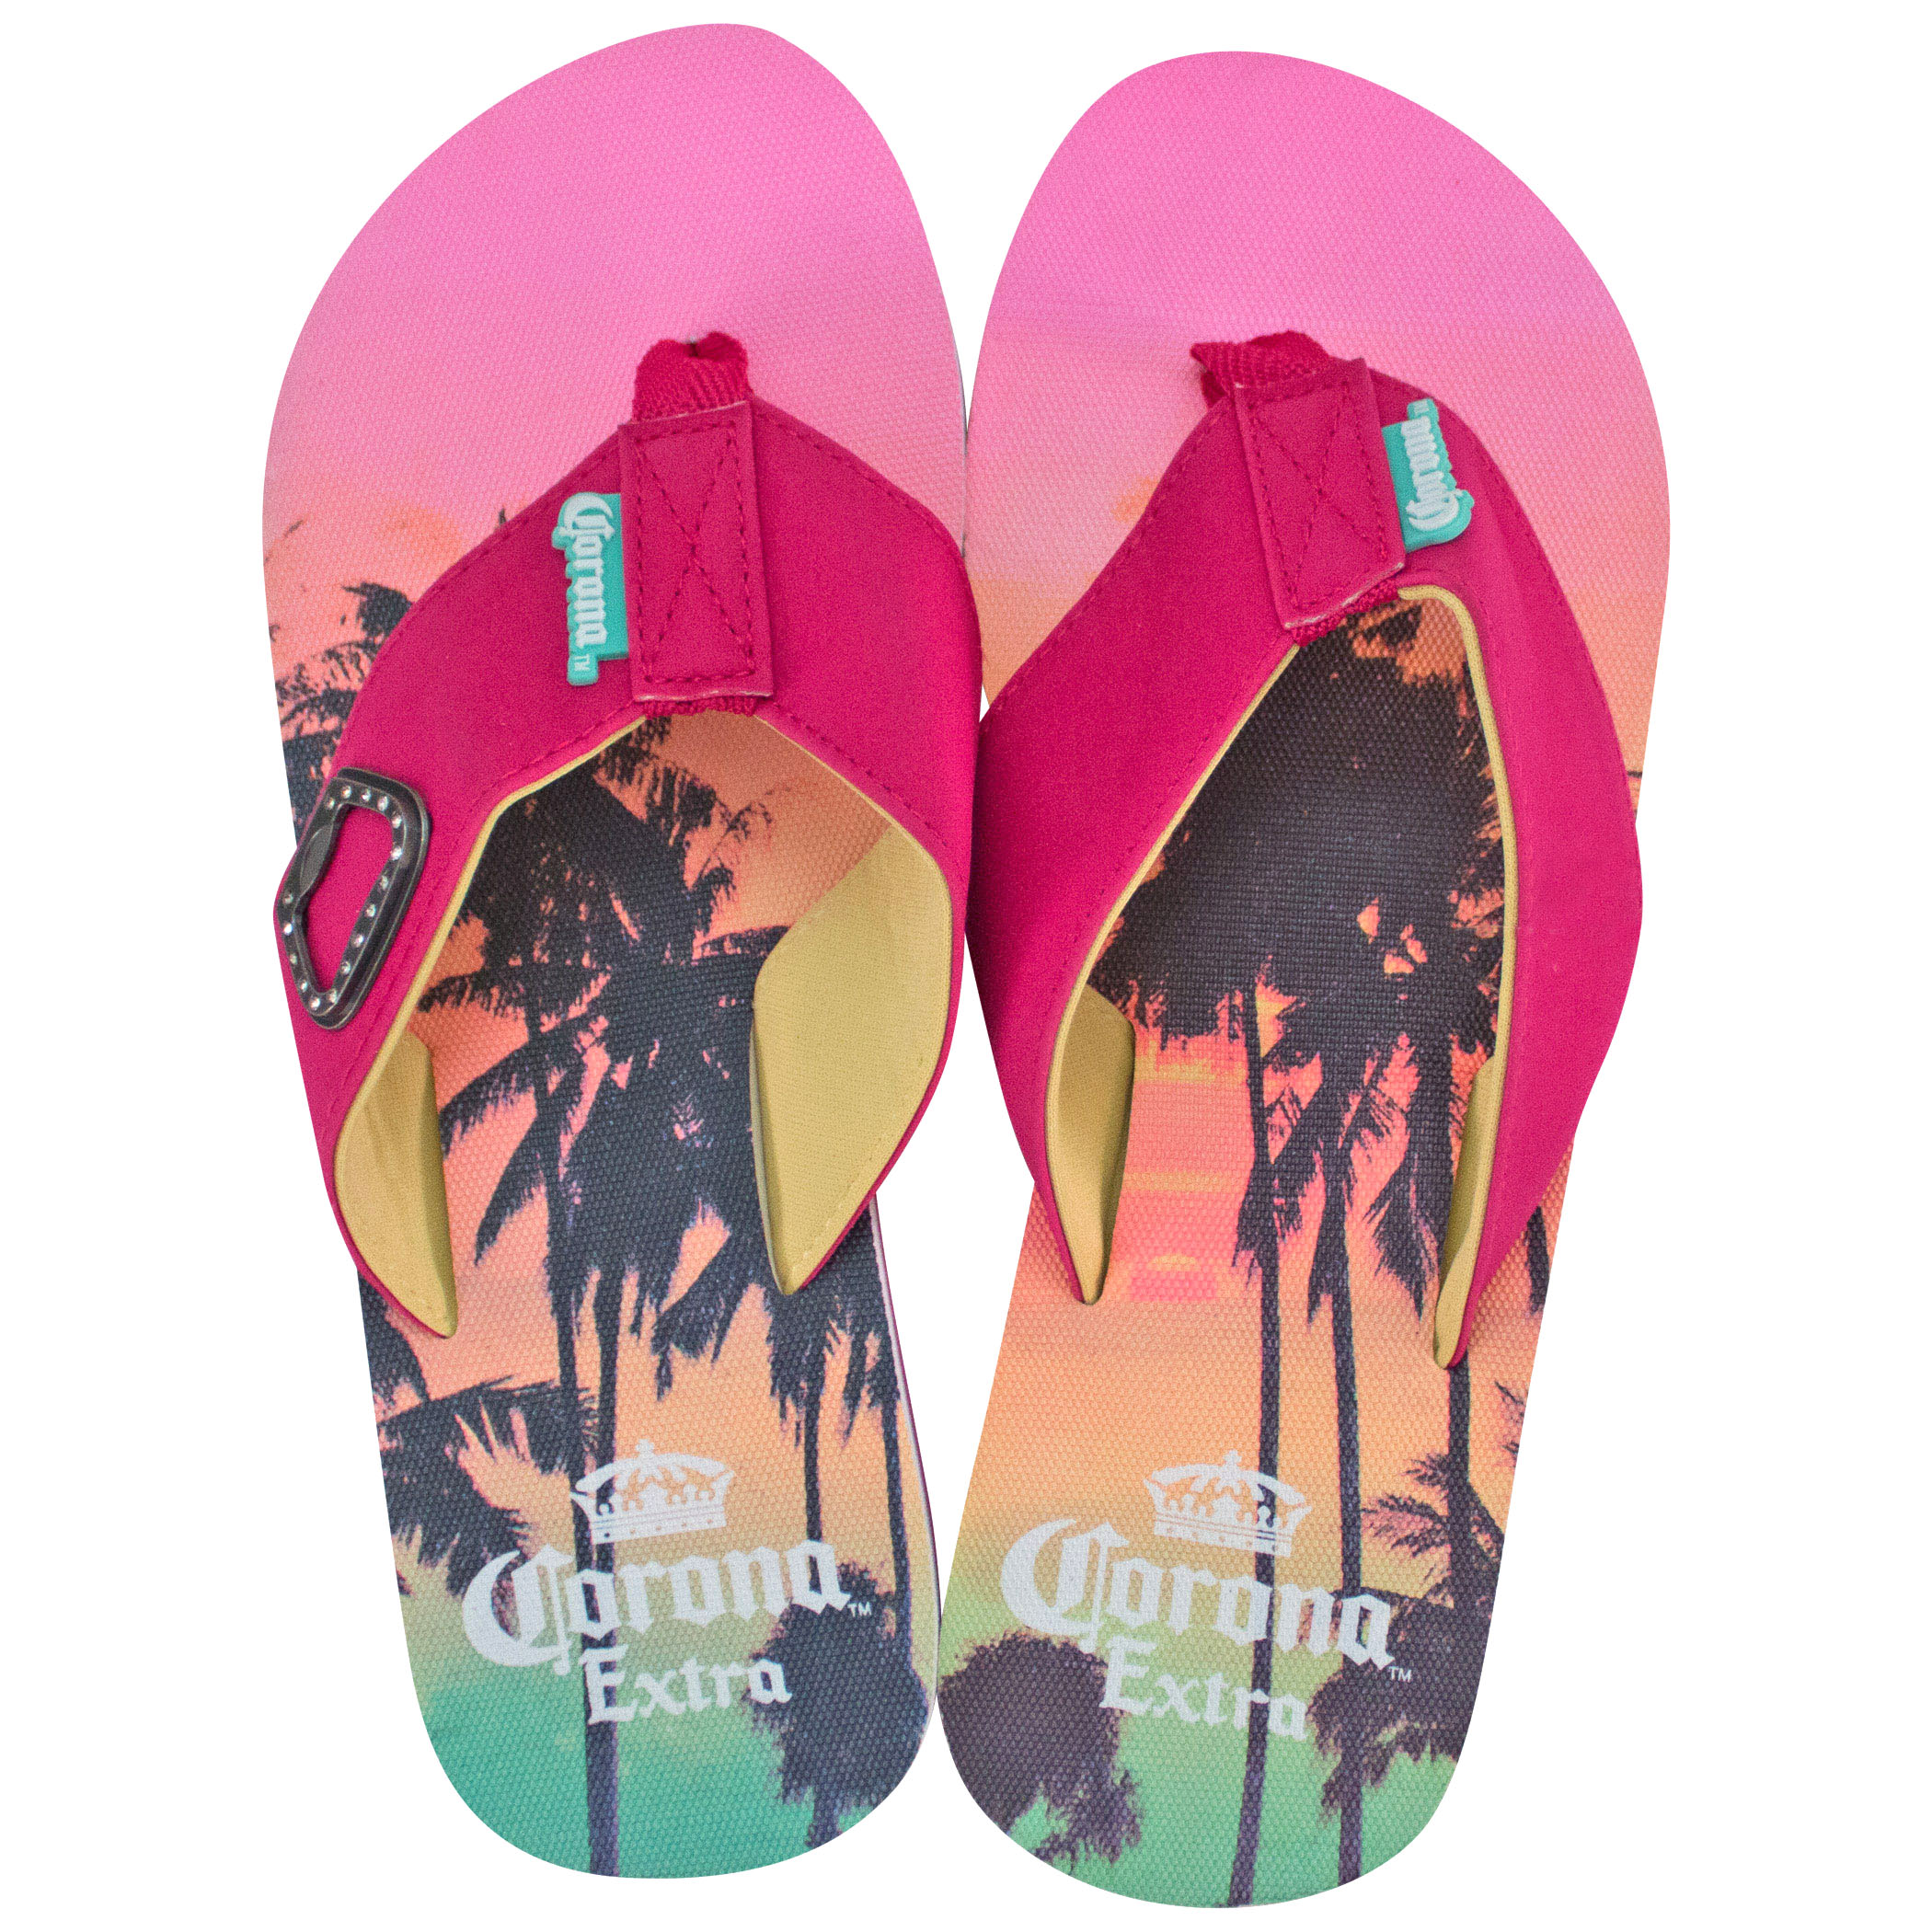 Corona Extra Pink Sunset Women's Sandals